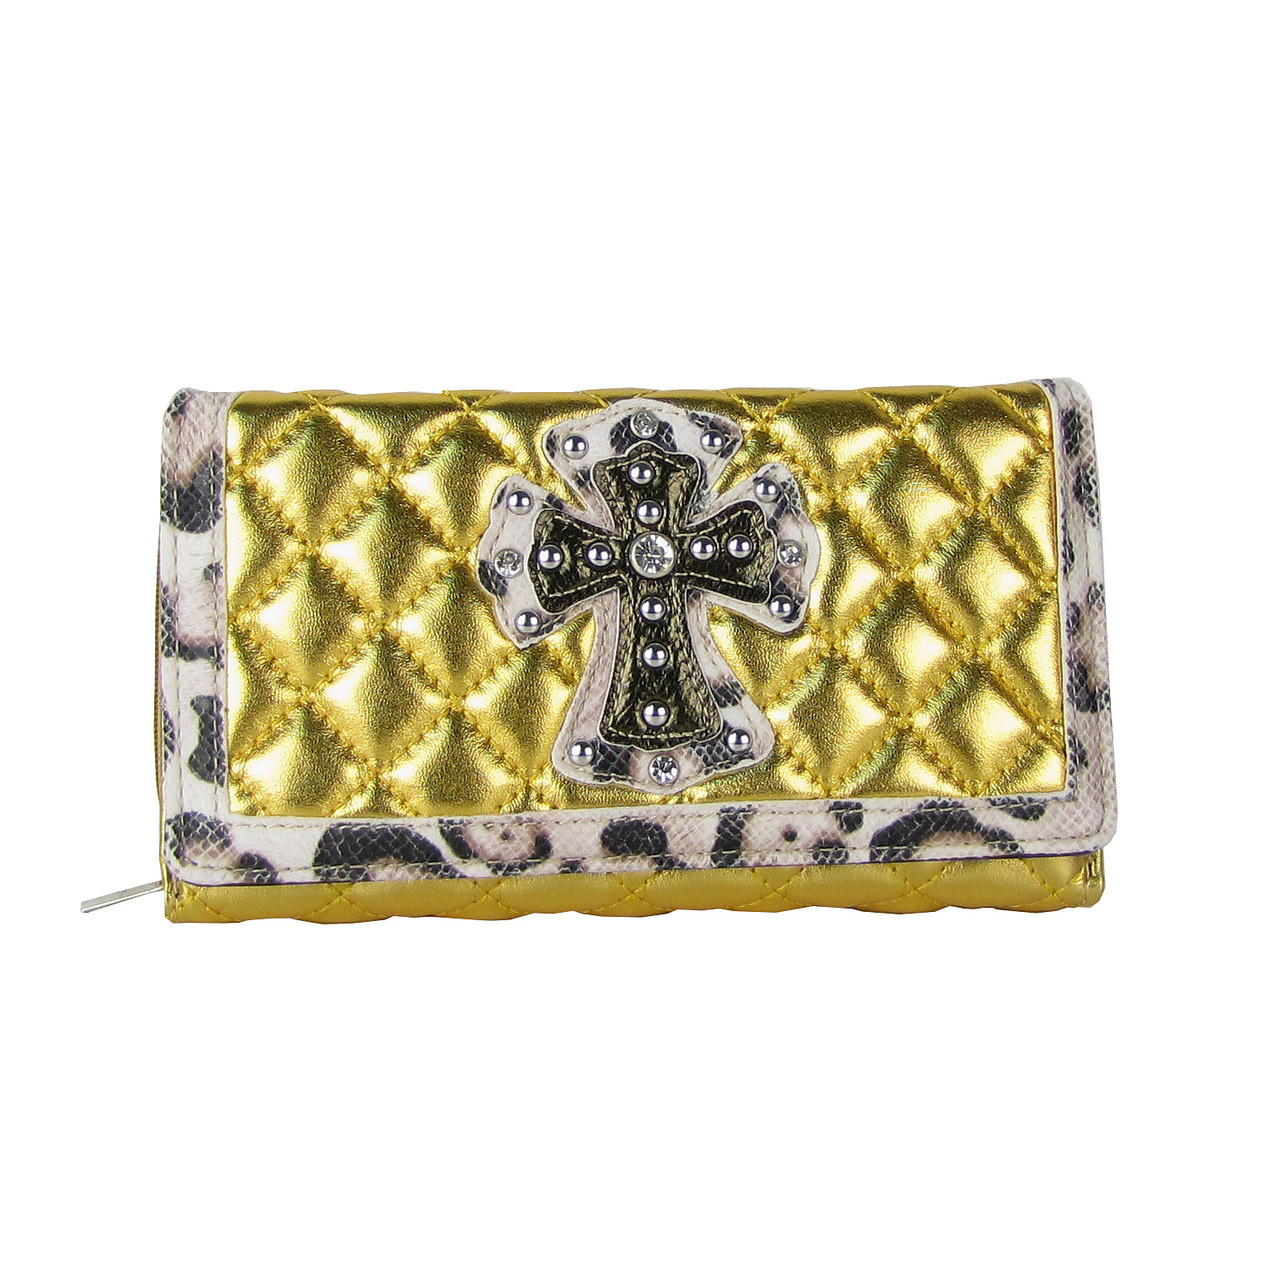 GOLD RHINESTONE CROSS LEAPORD PATTERN SHINY METALLIC LEATHERETTE LOOK CHECKBOOK WALLET CB1-0425GLD